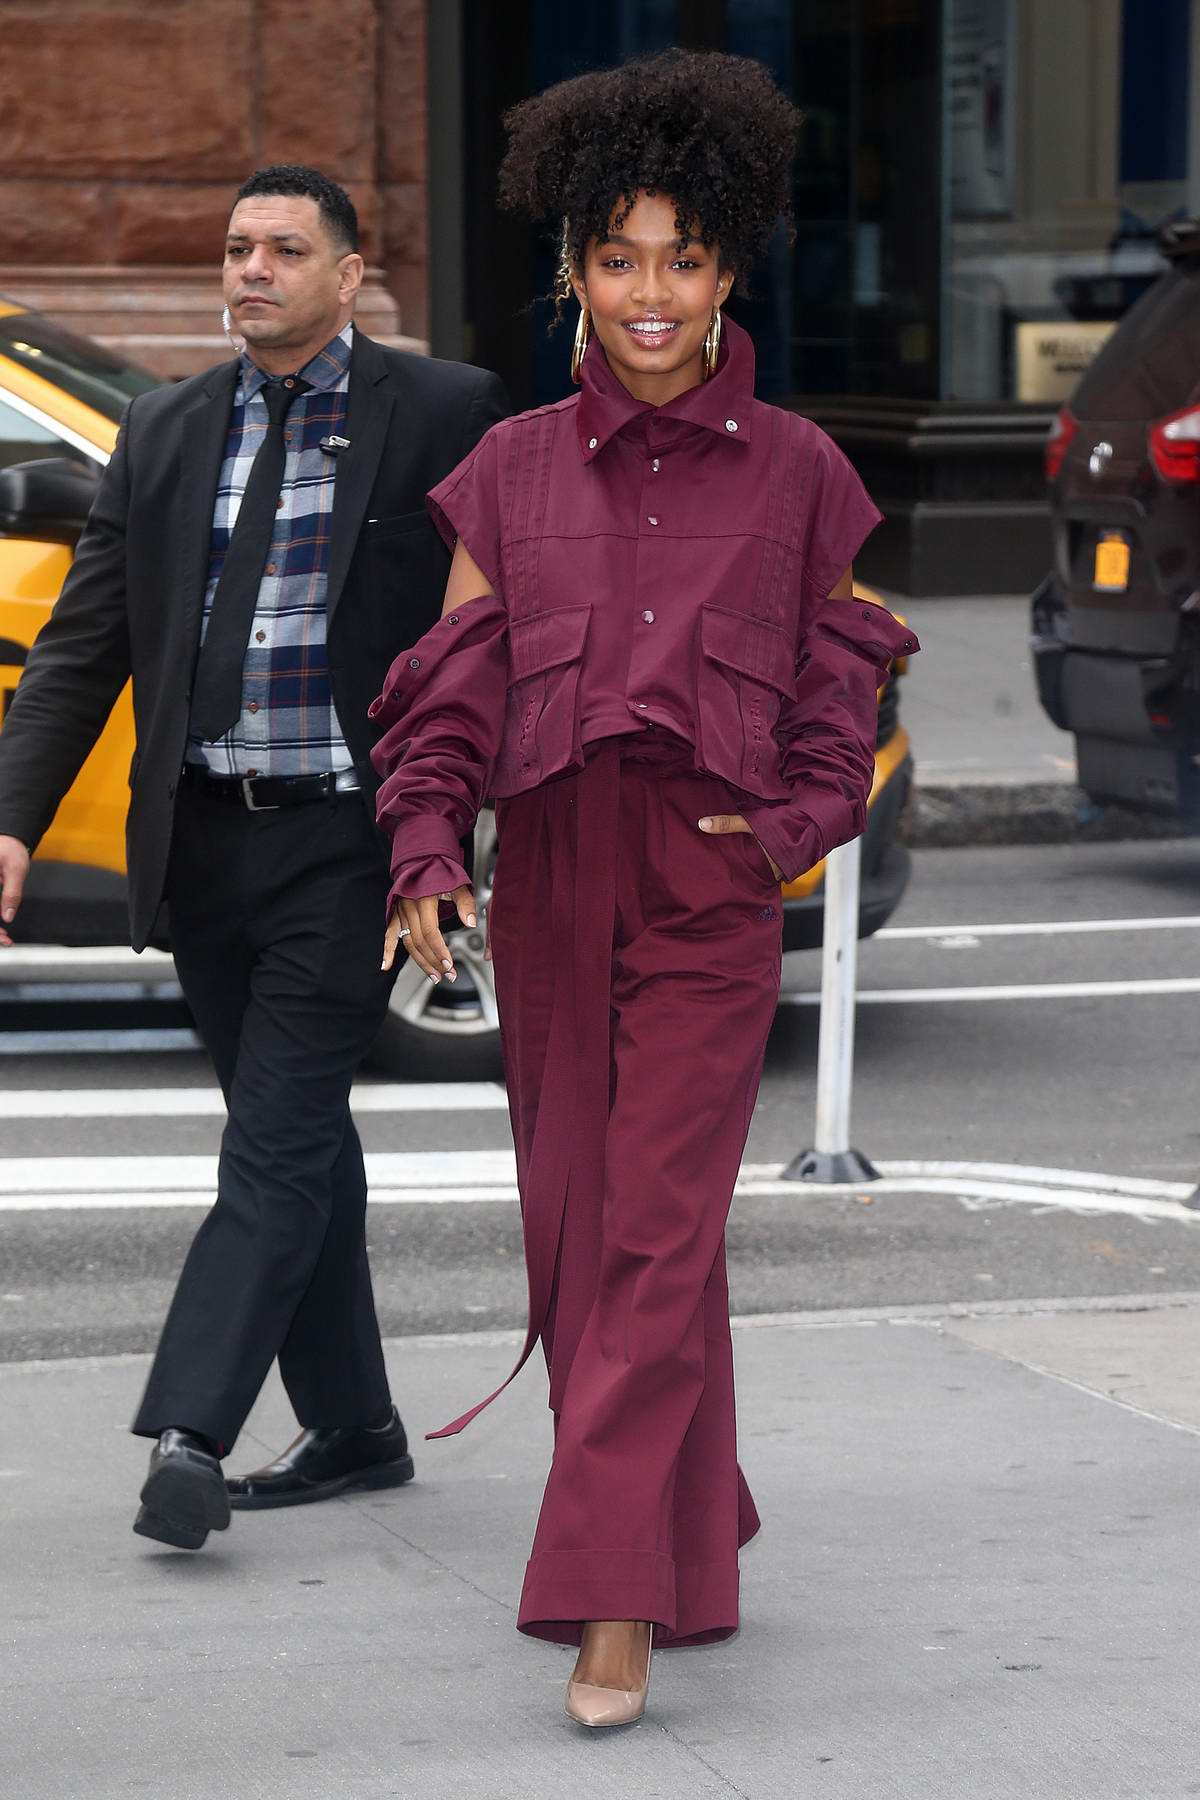 Yara Shahidi seen wearing an all-maroon outfit as she visits the Build Series in New York City